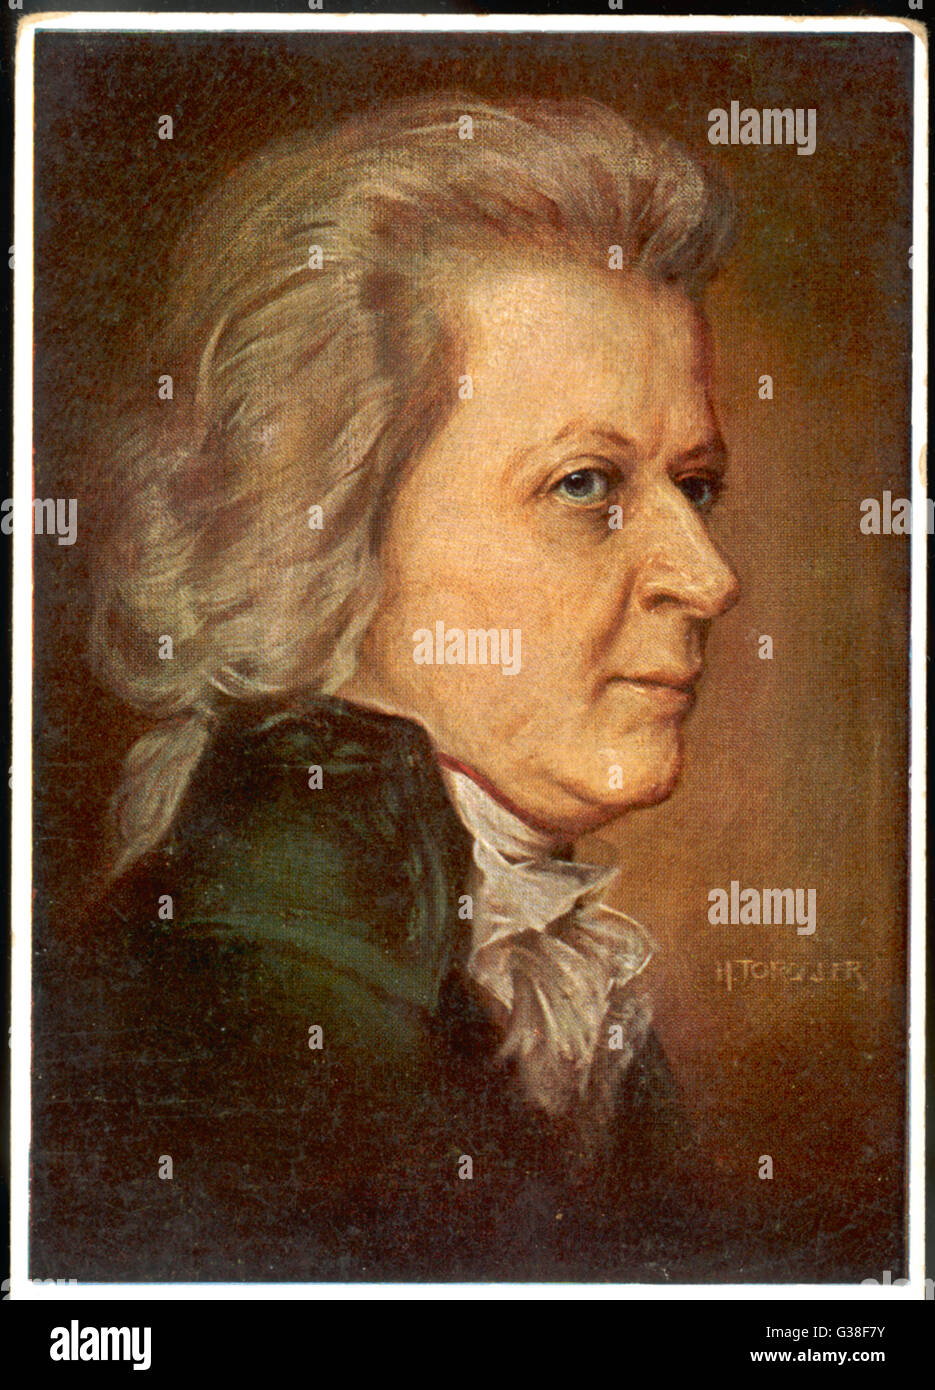 WOLFGANG AMADEUS MOZART (1756 - 1791) the Austrian composer in later  life - Stock Image